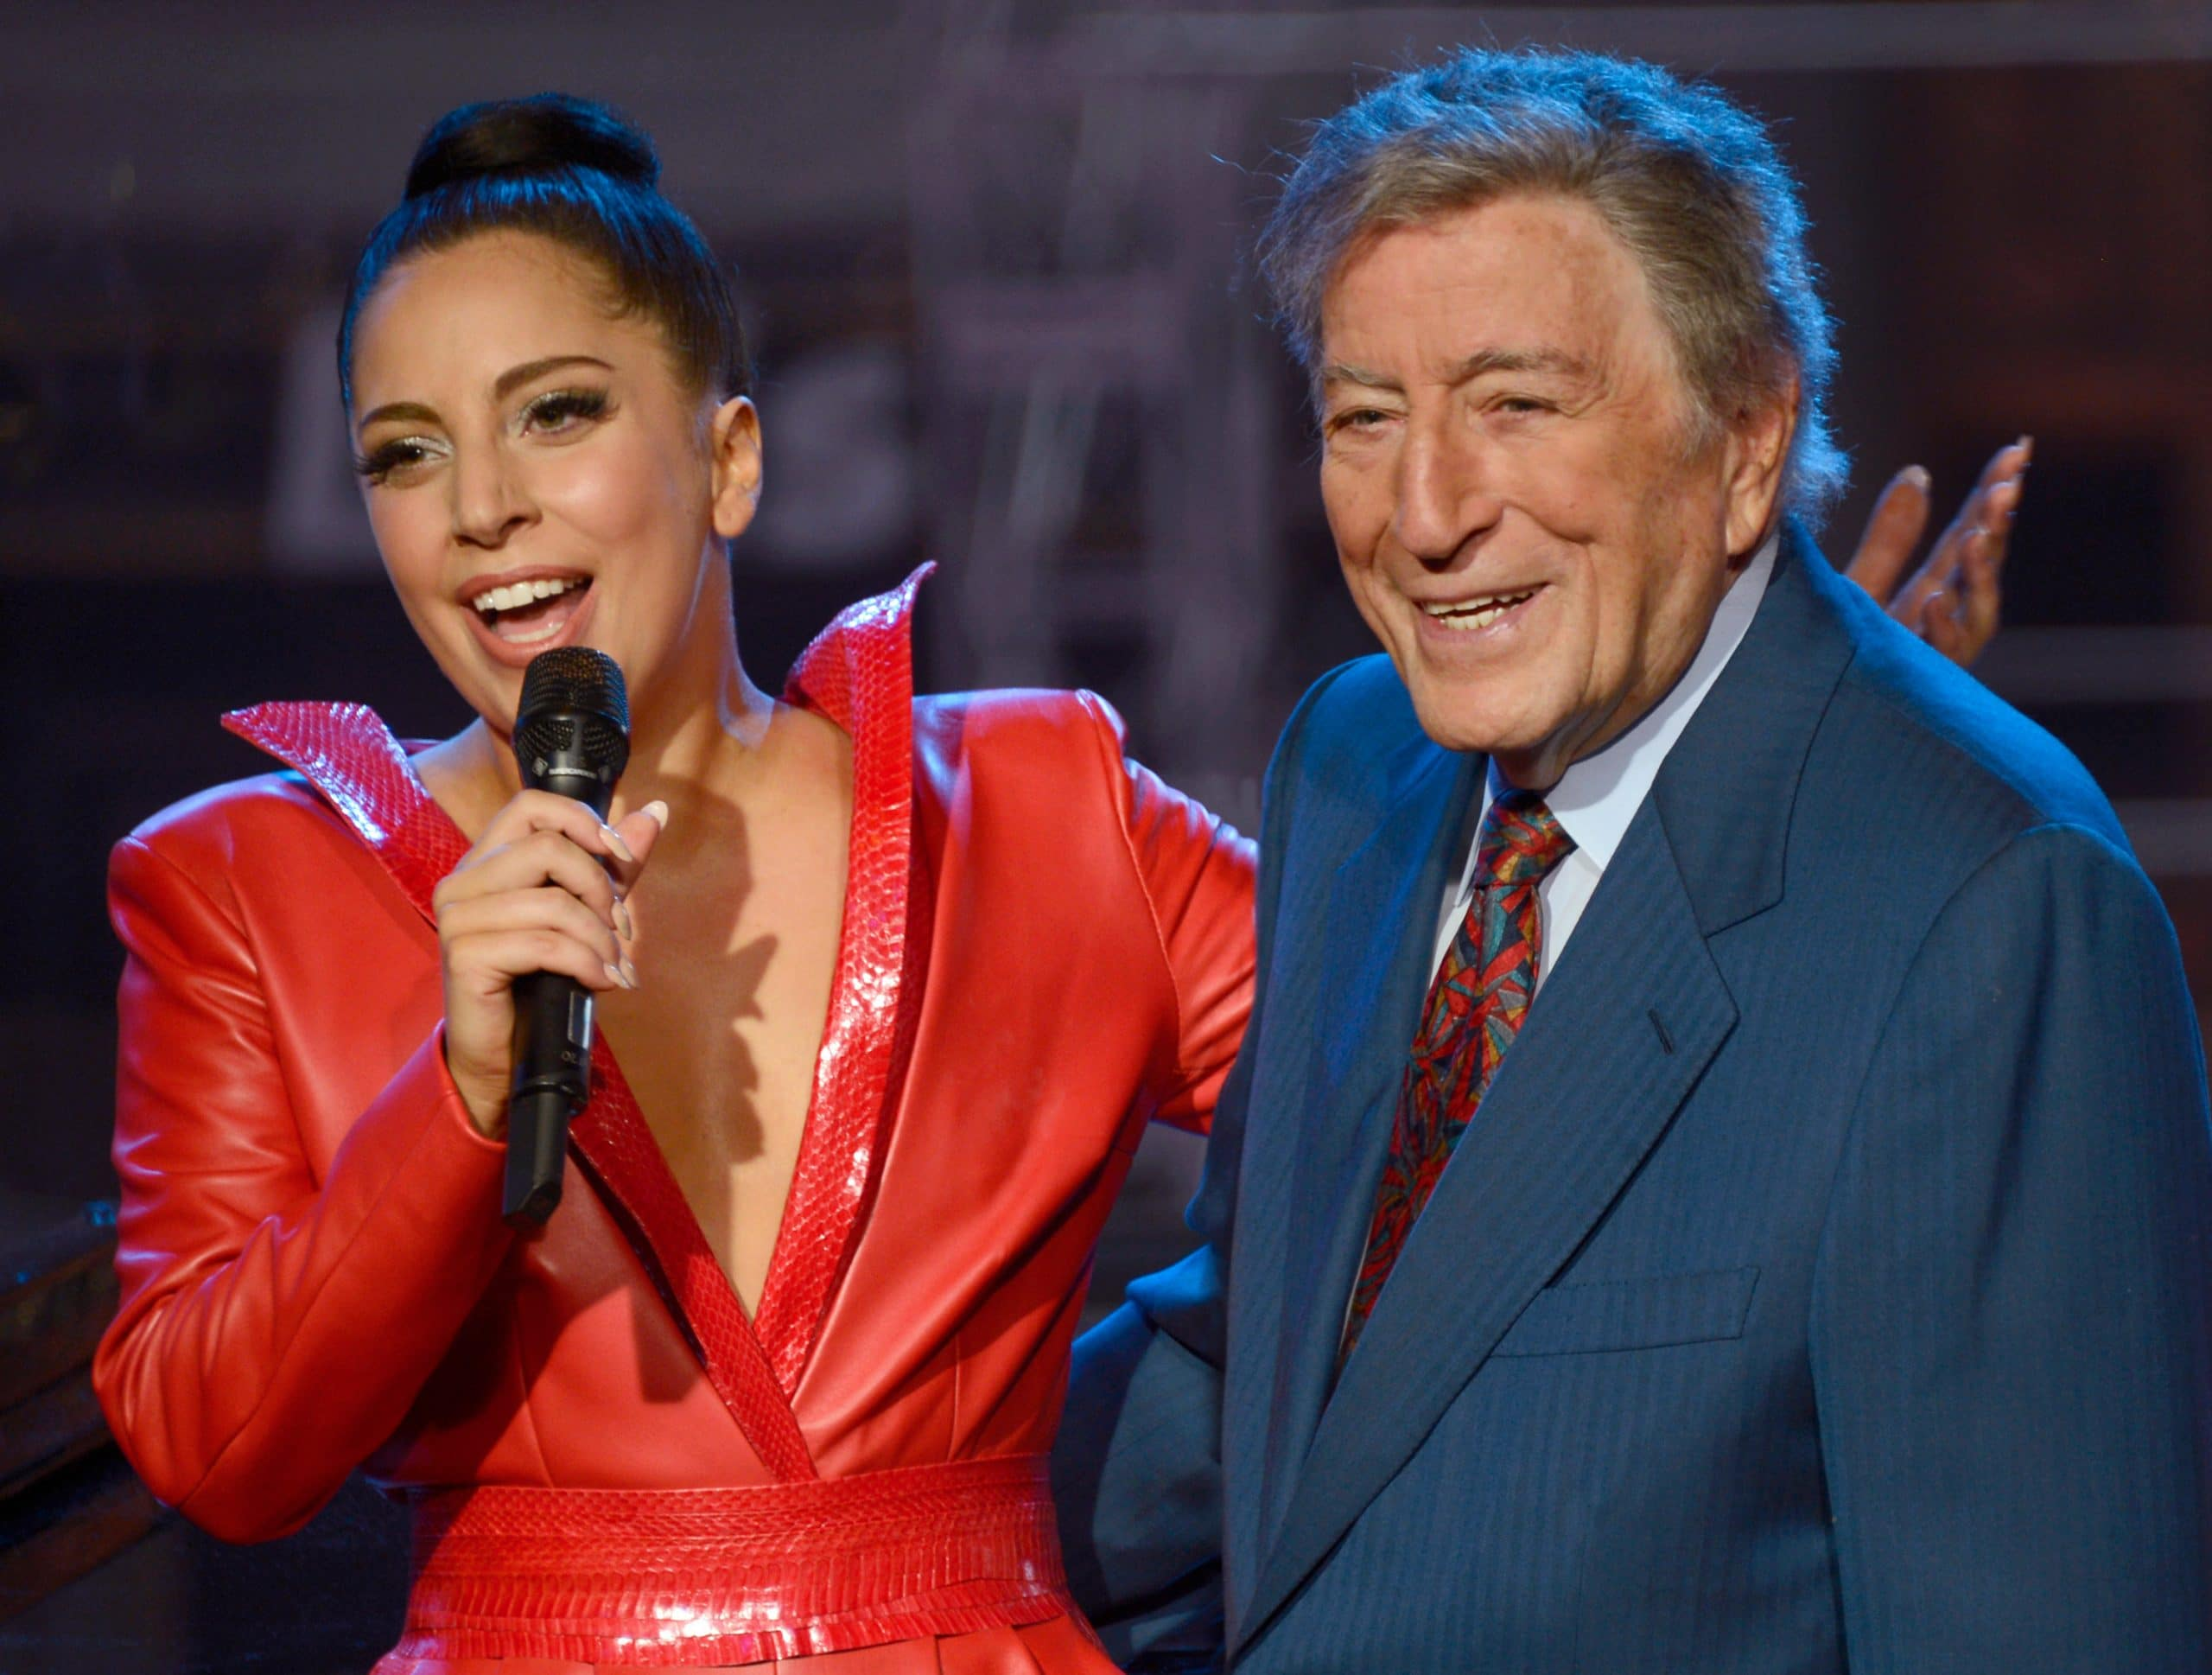 94-Year-Old Tony Bennett Has Been Diagnosed With Alzheimer's